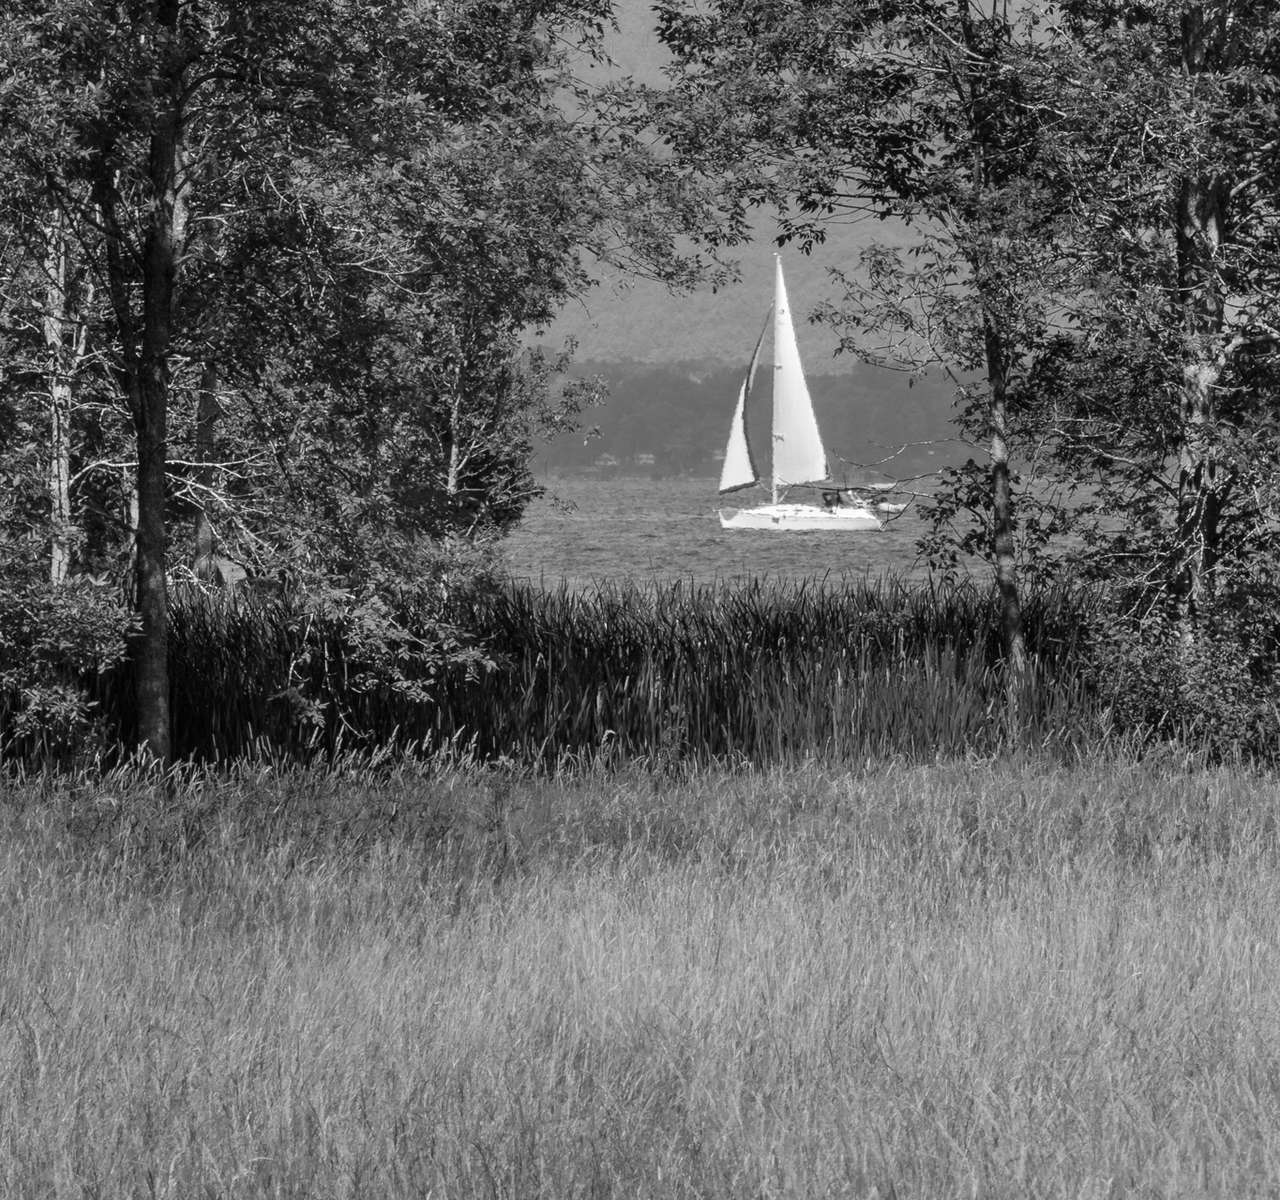 Sailing by Shelburne Farms 20